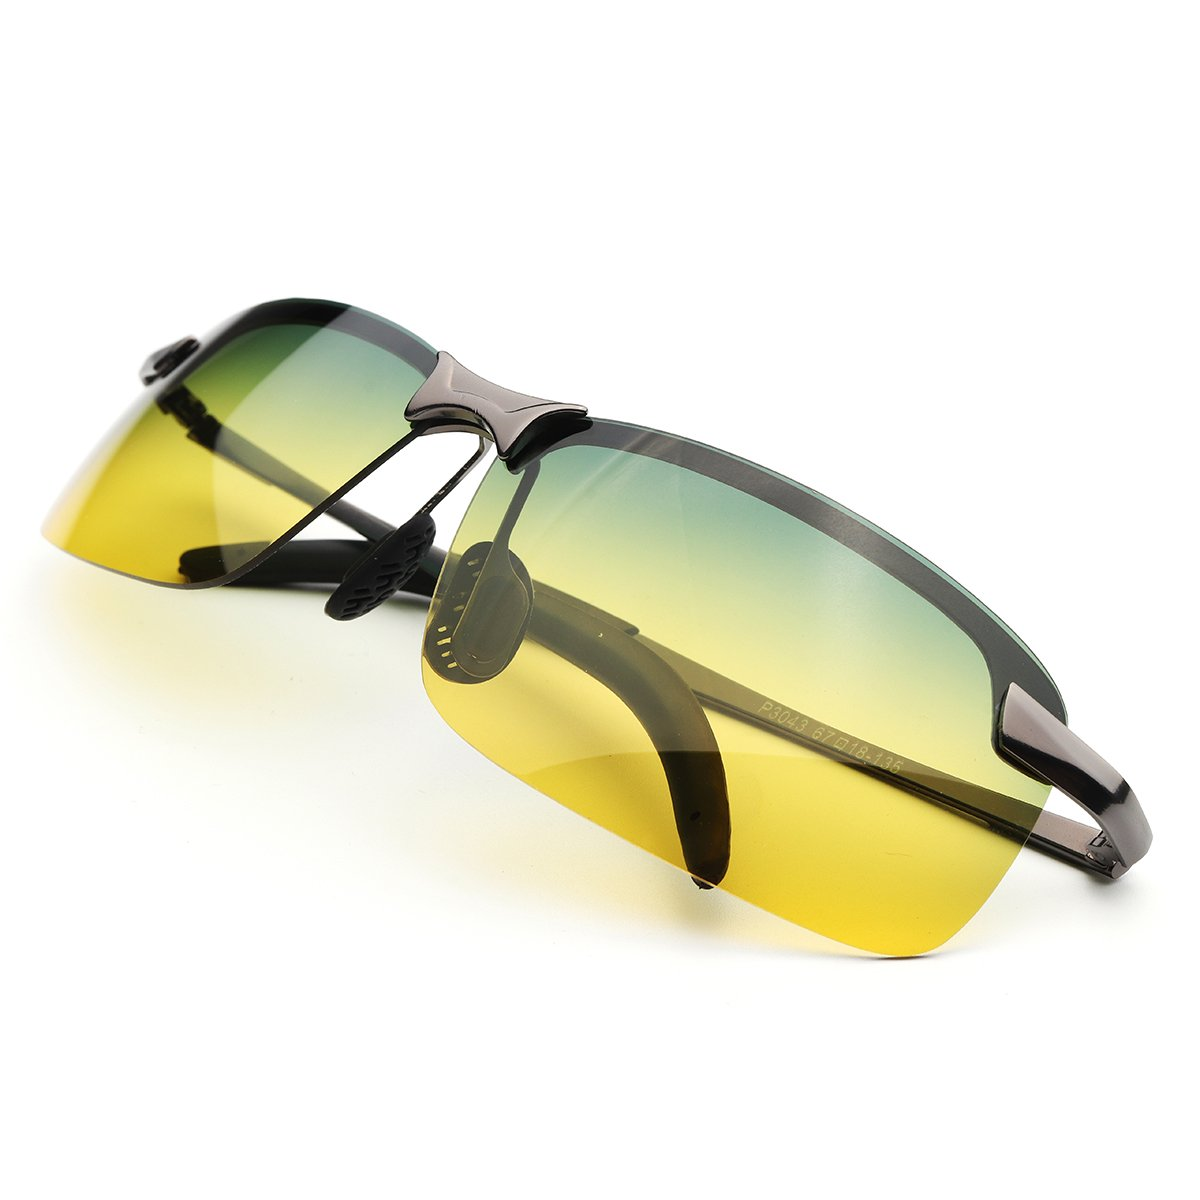 8155dde635 Polarized Night Vision Driving Glasses Eyeglasses Sunglasses Anti-Glare  Sport Outdoor Driving Glasses Riding Goggle UV Protection